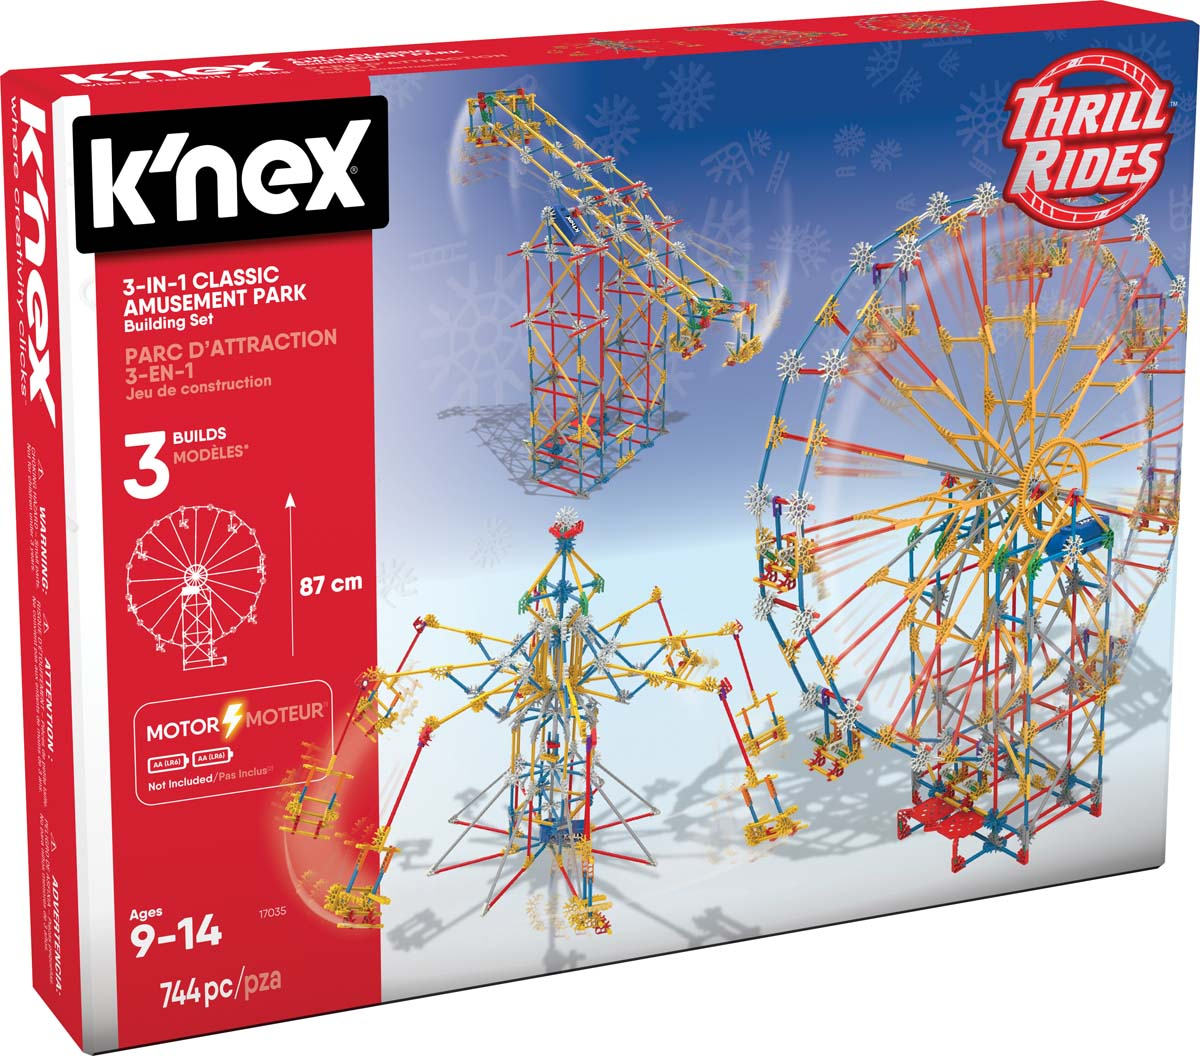 K Nex Thrill Rides 3 In 1 Classic Amusement Park Building Set Knex Co Uk Where Creativity Clicks